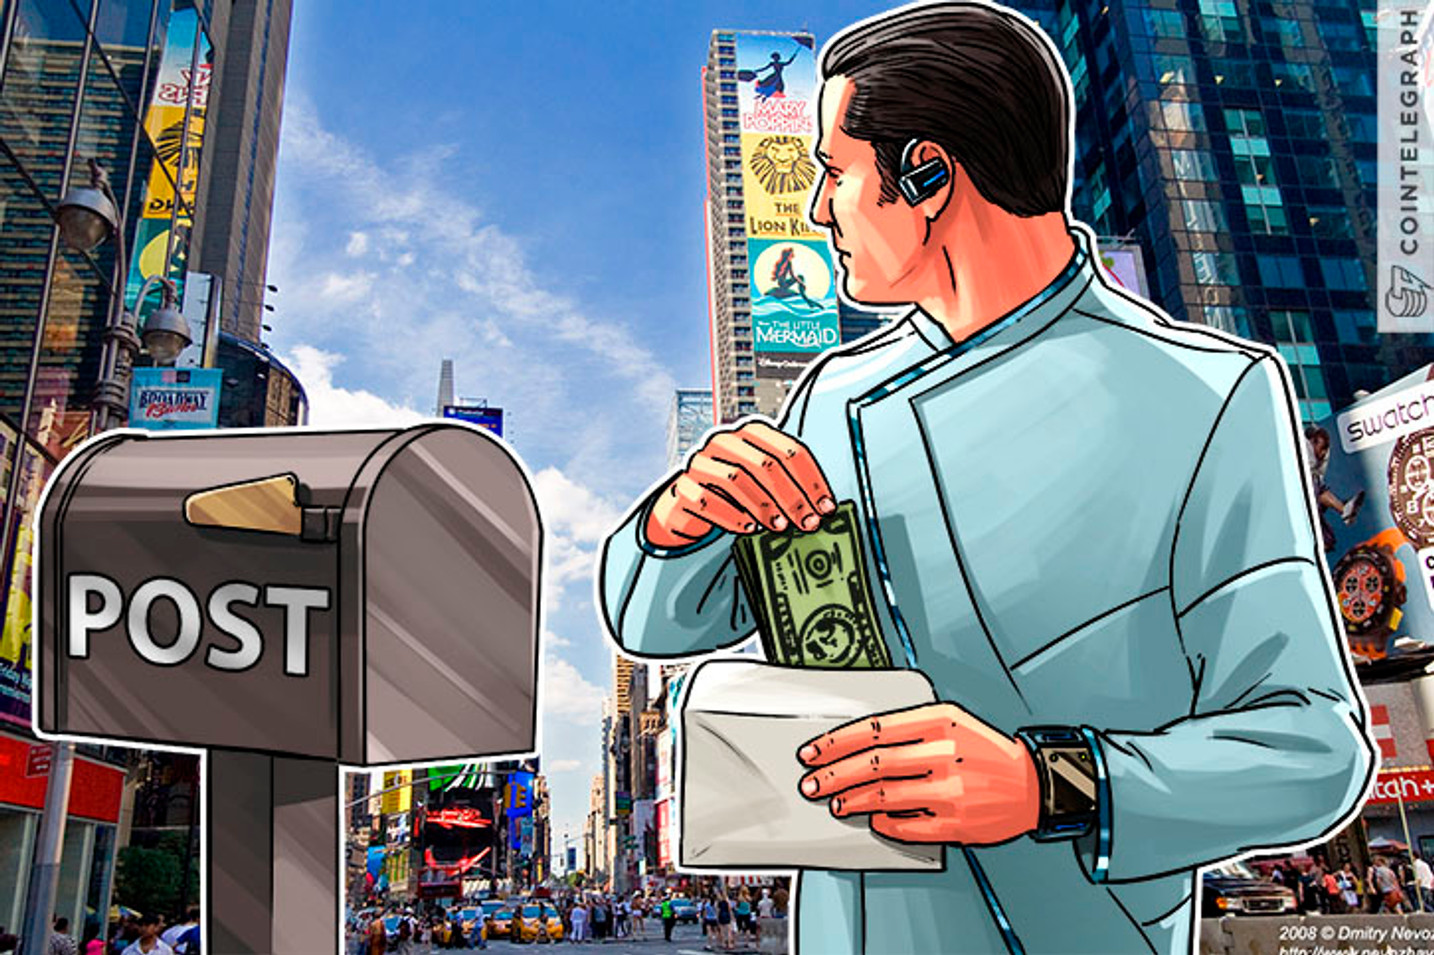 Americans Skeptical of Bitcoin, Asia Surpasses US, Europe in Fintech Investments